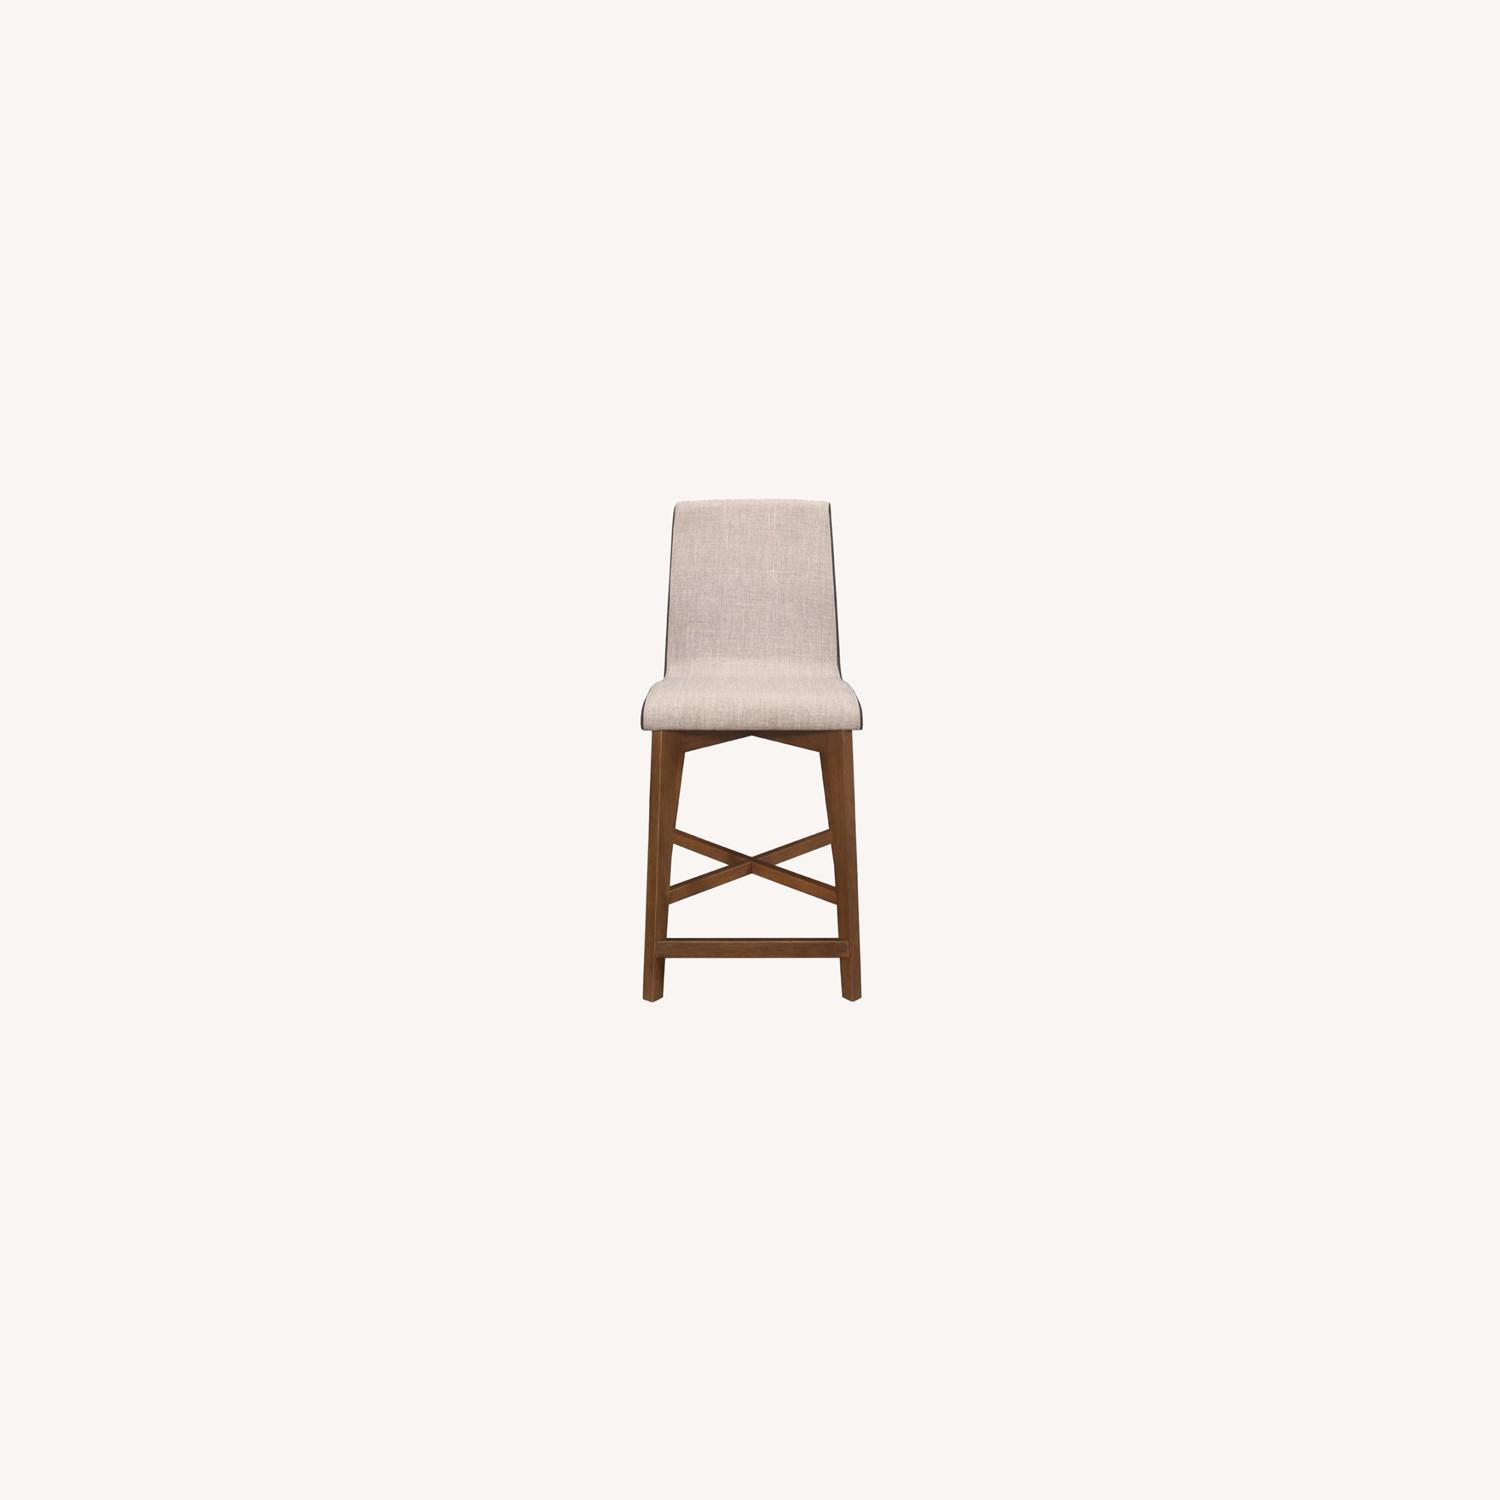 Counter Height Stool In 2-Tone Grey Fabric Finish - image-5